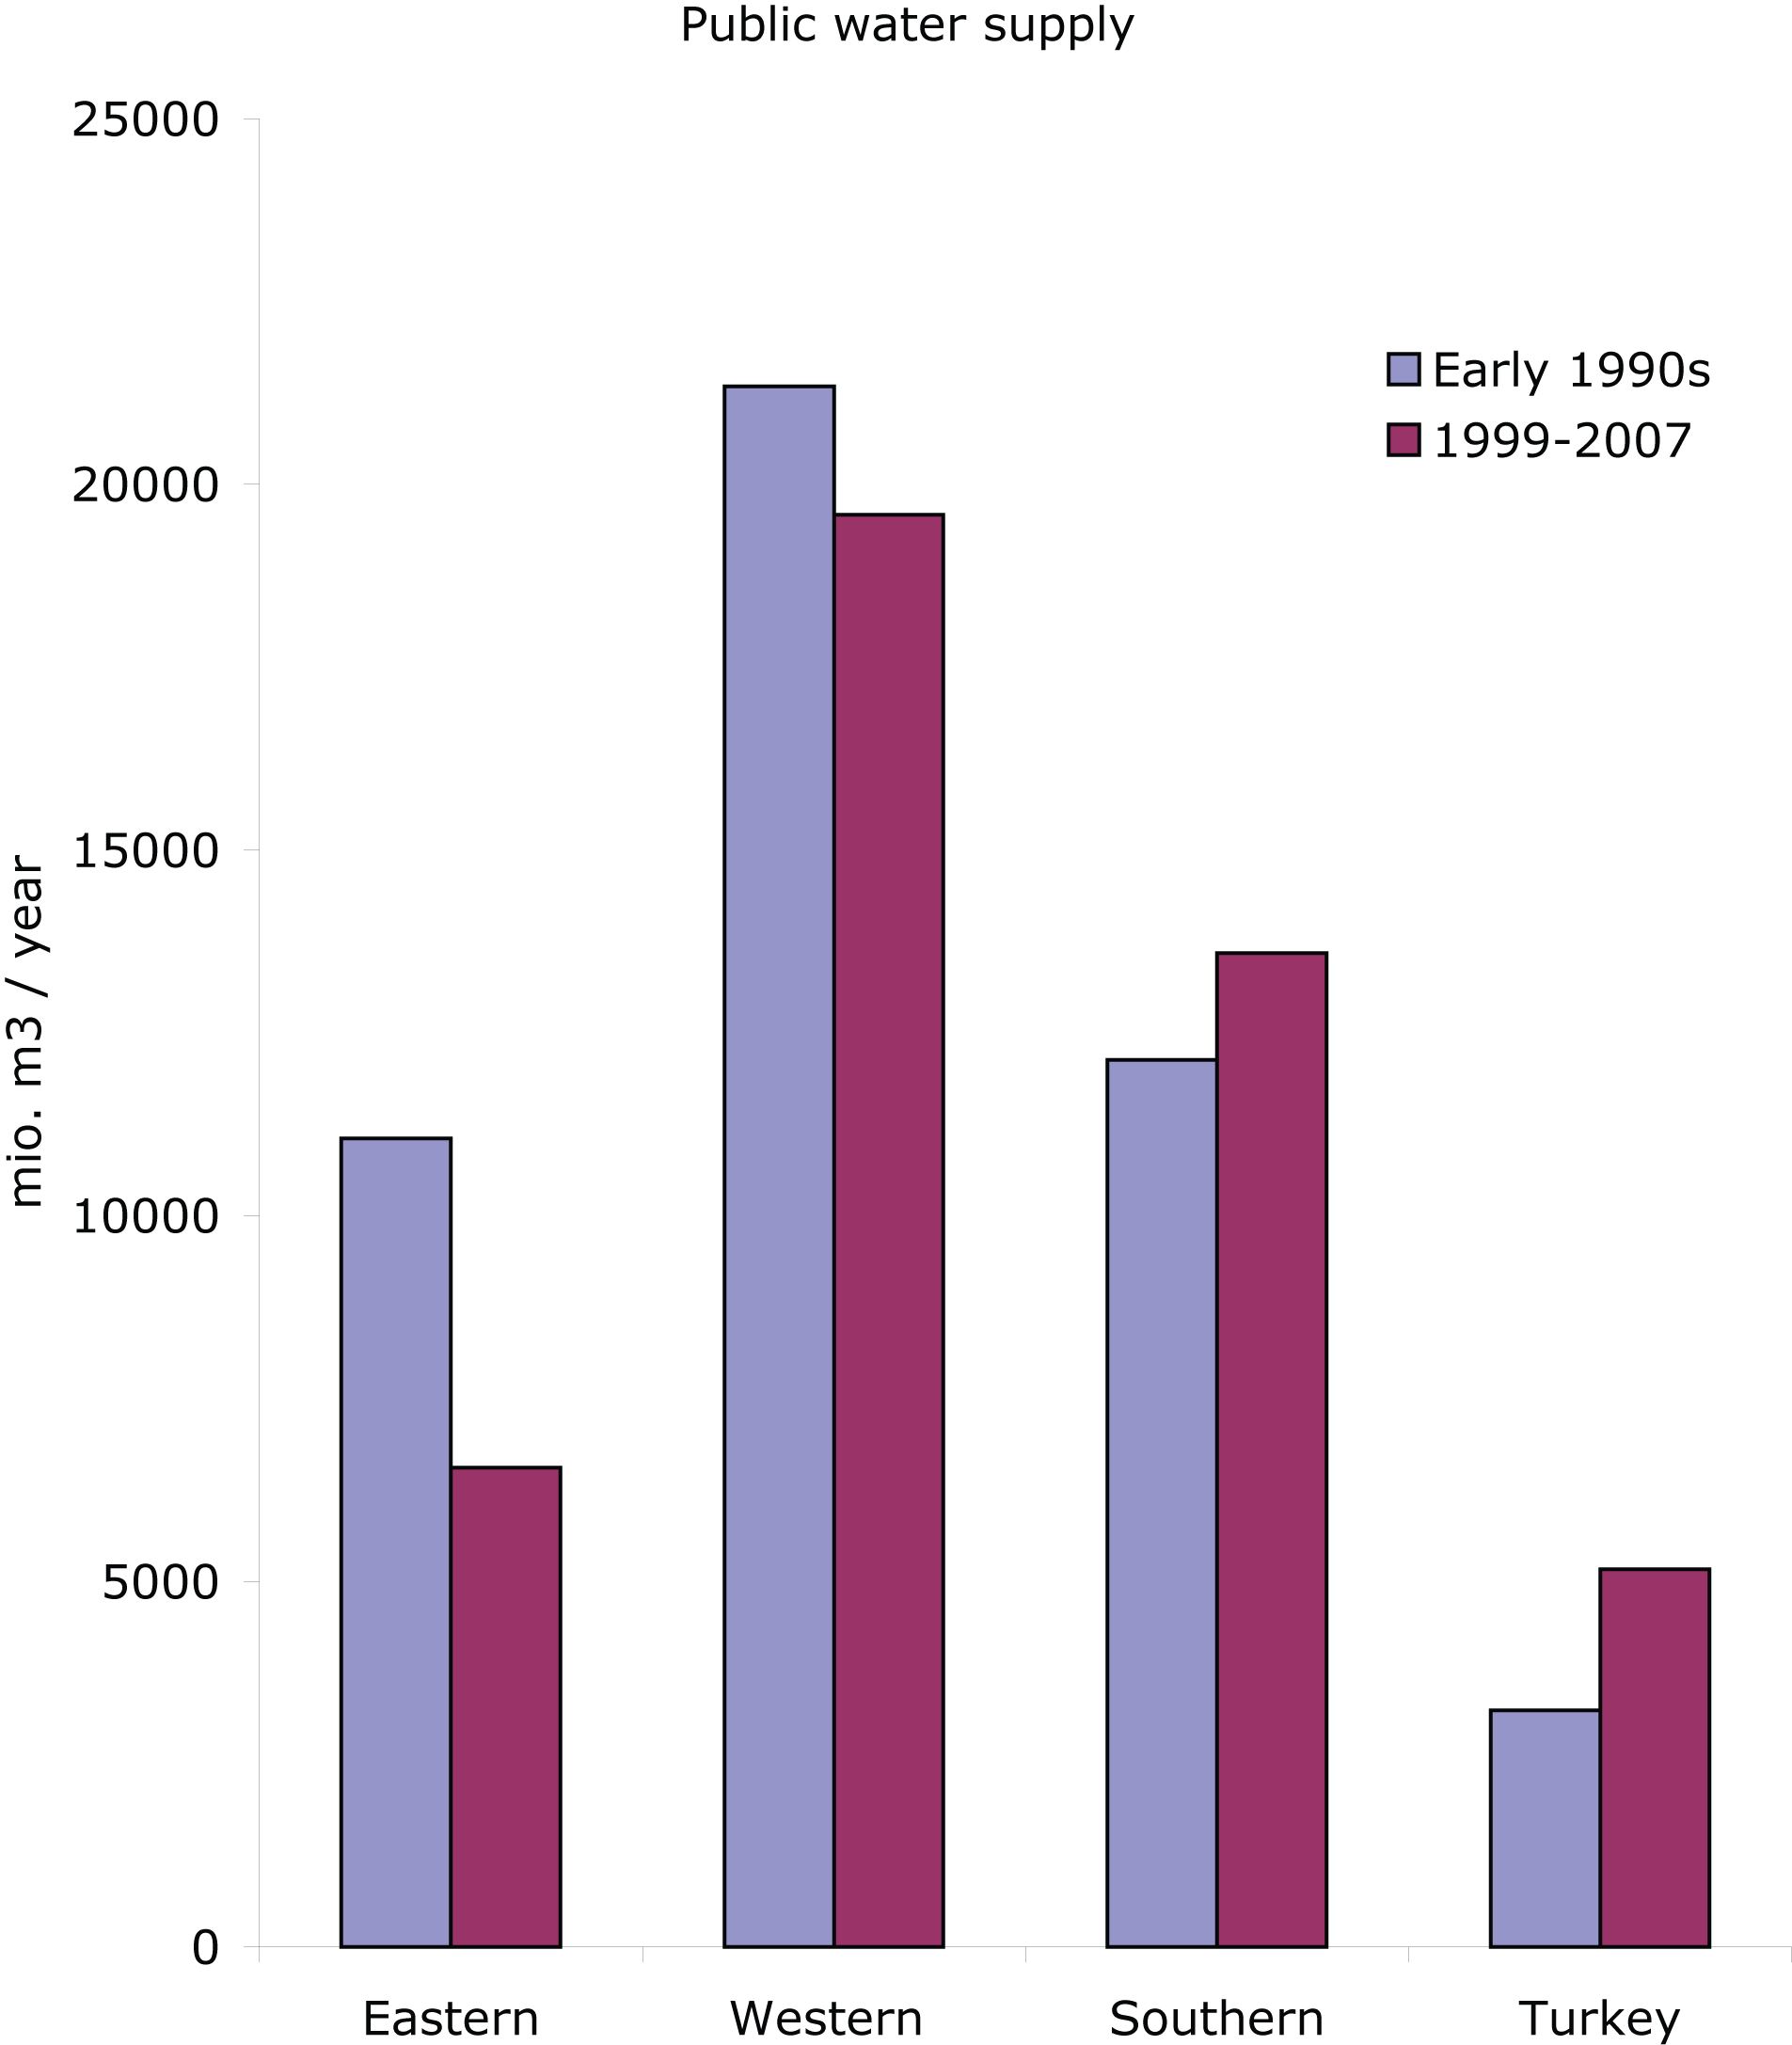 Water abstraction for public water supply (mil. m3/year) in early 1990s and 1999-2007